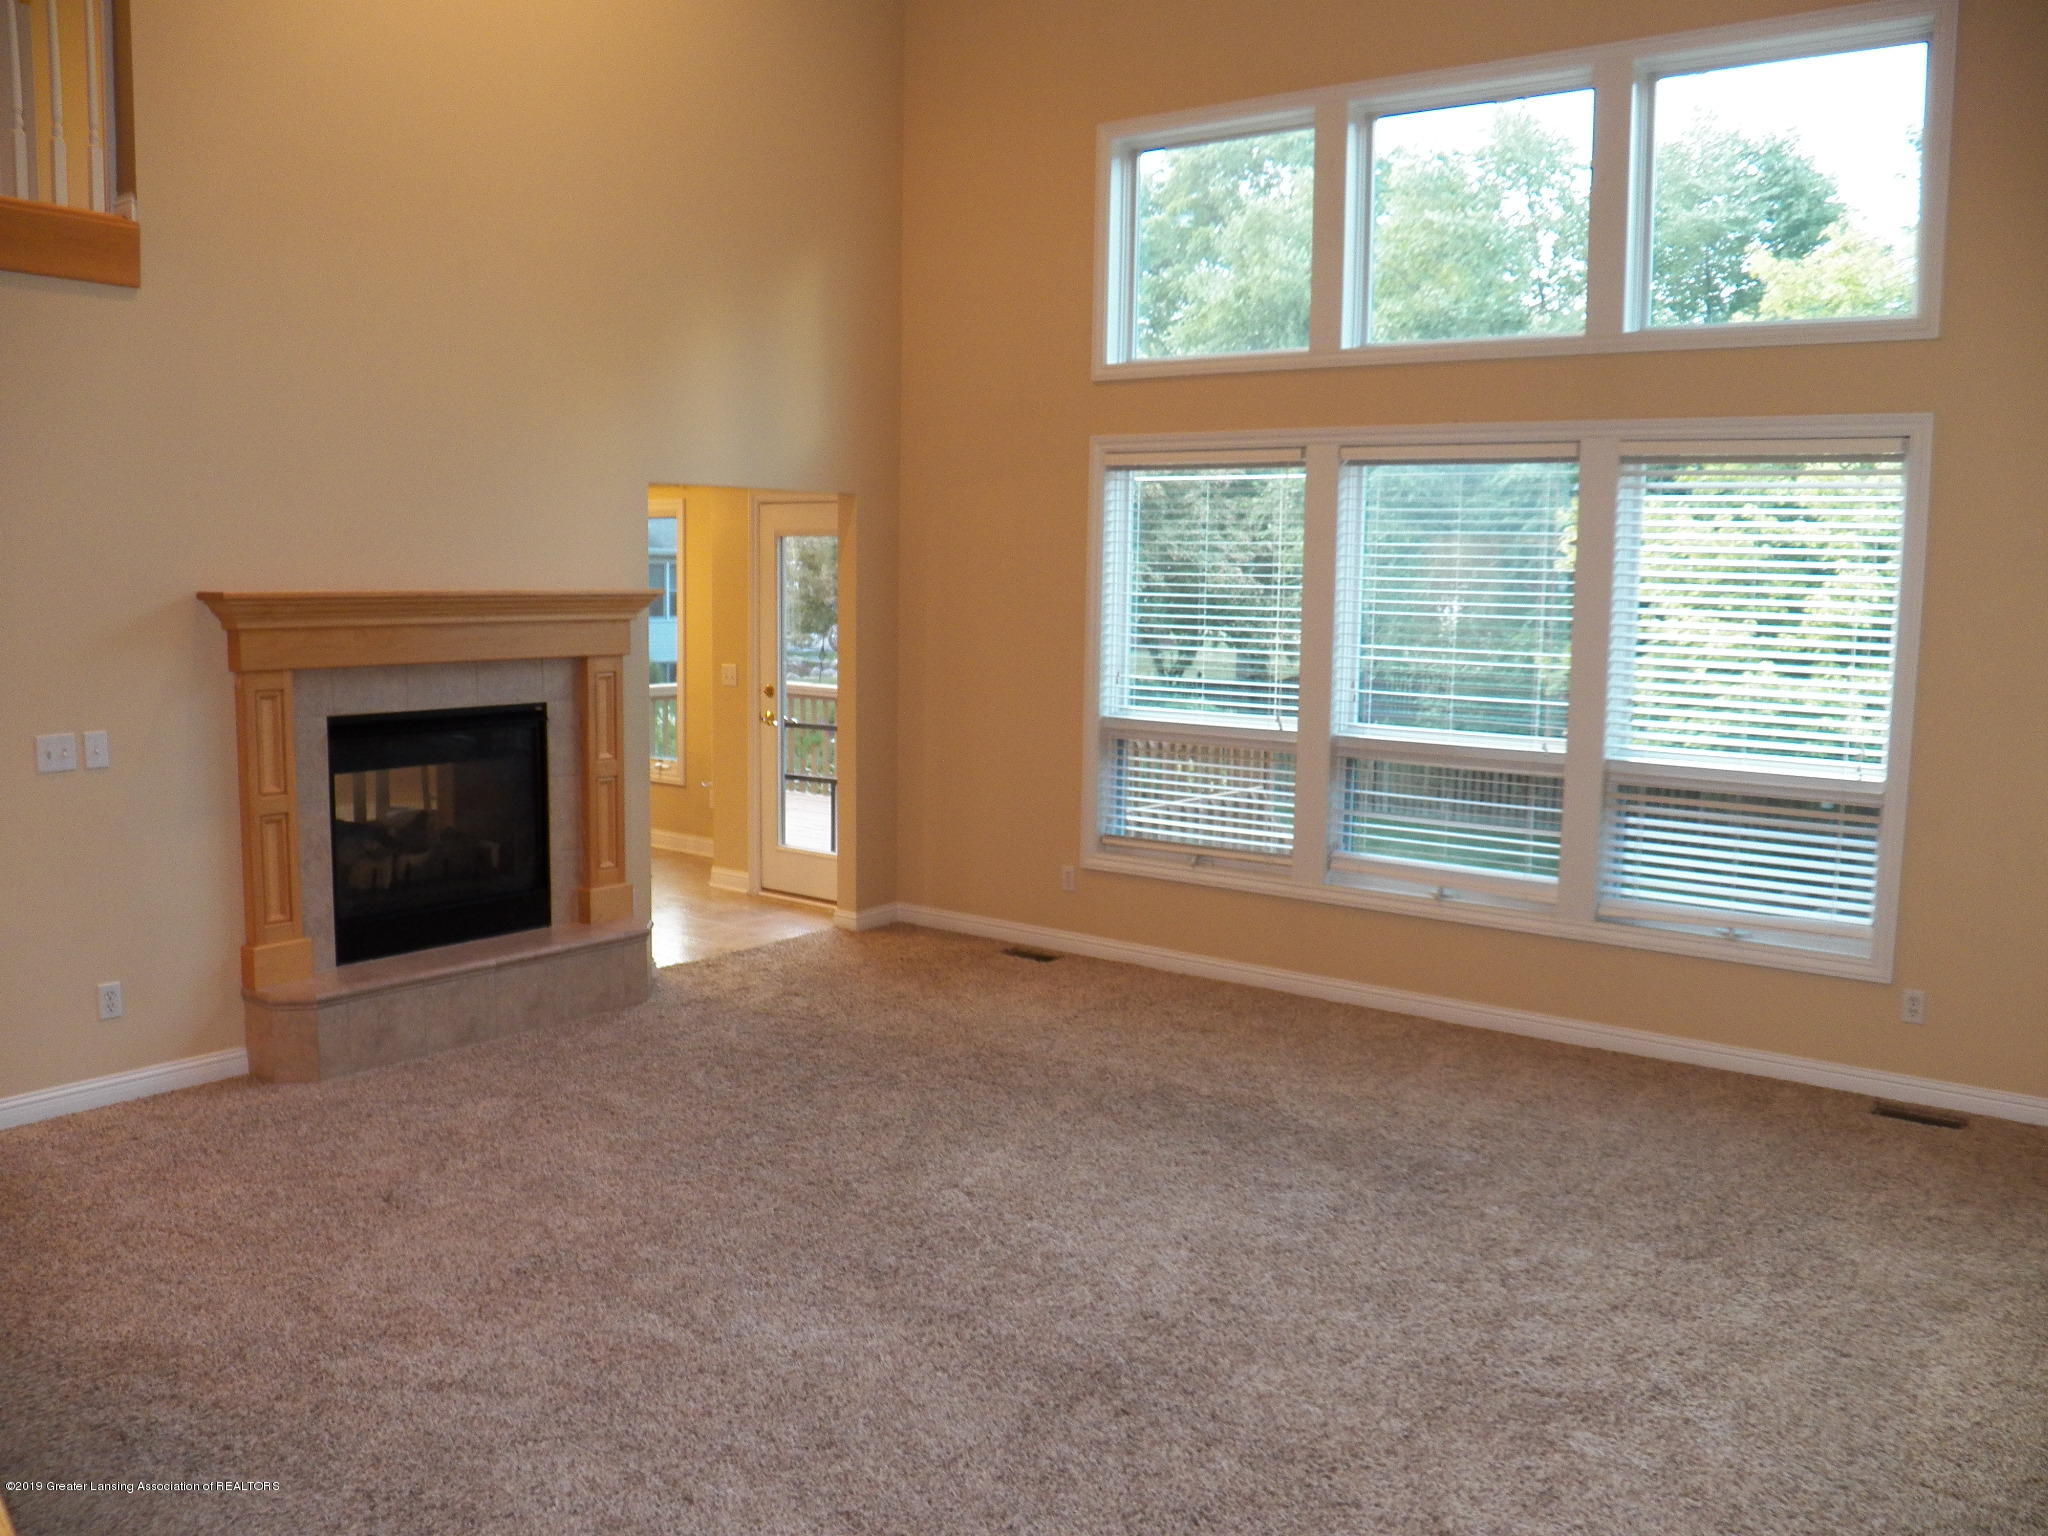 7387 Mallow Ln - living room 3 - 5